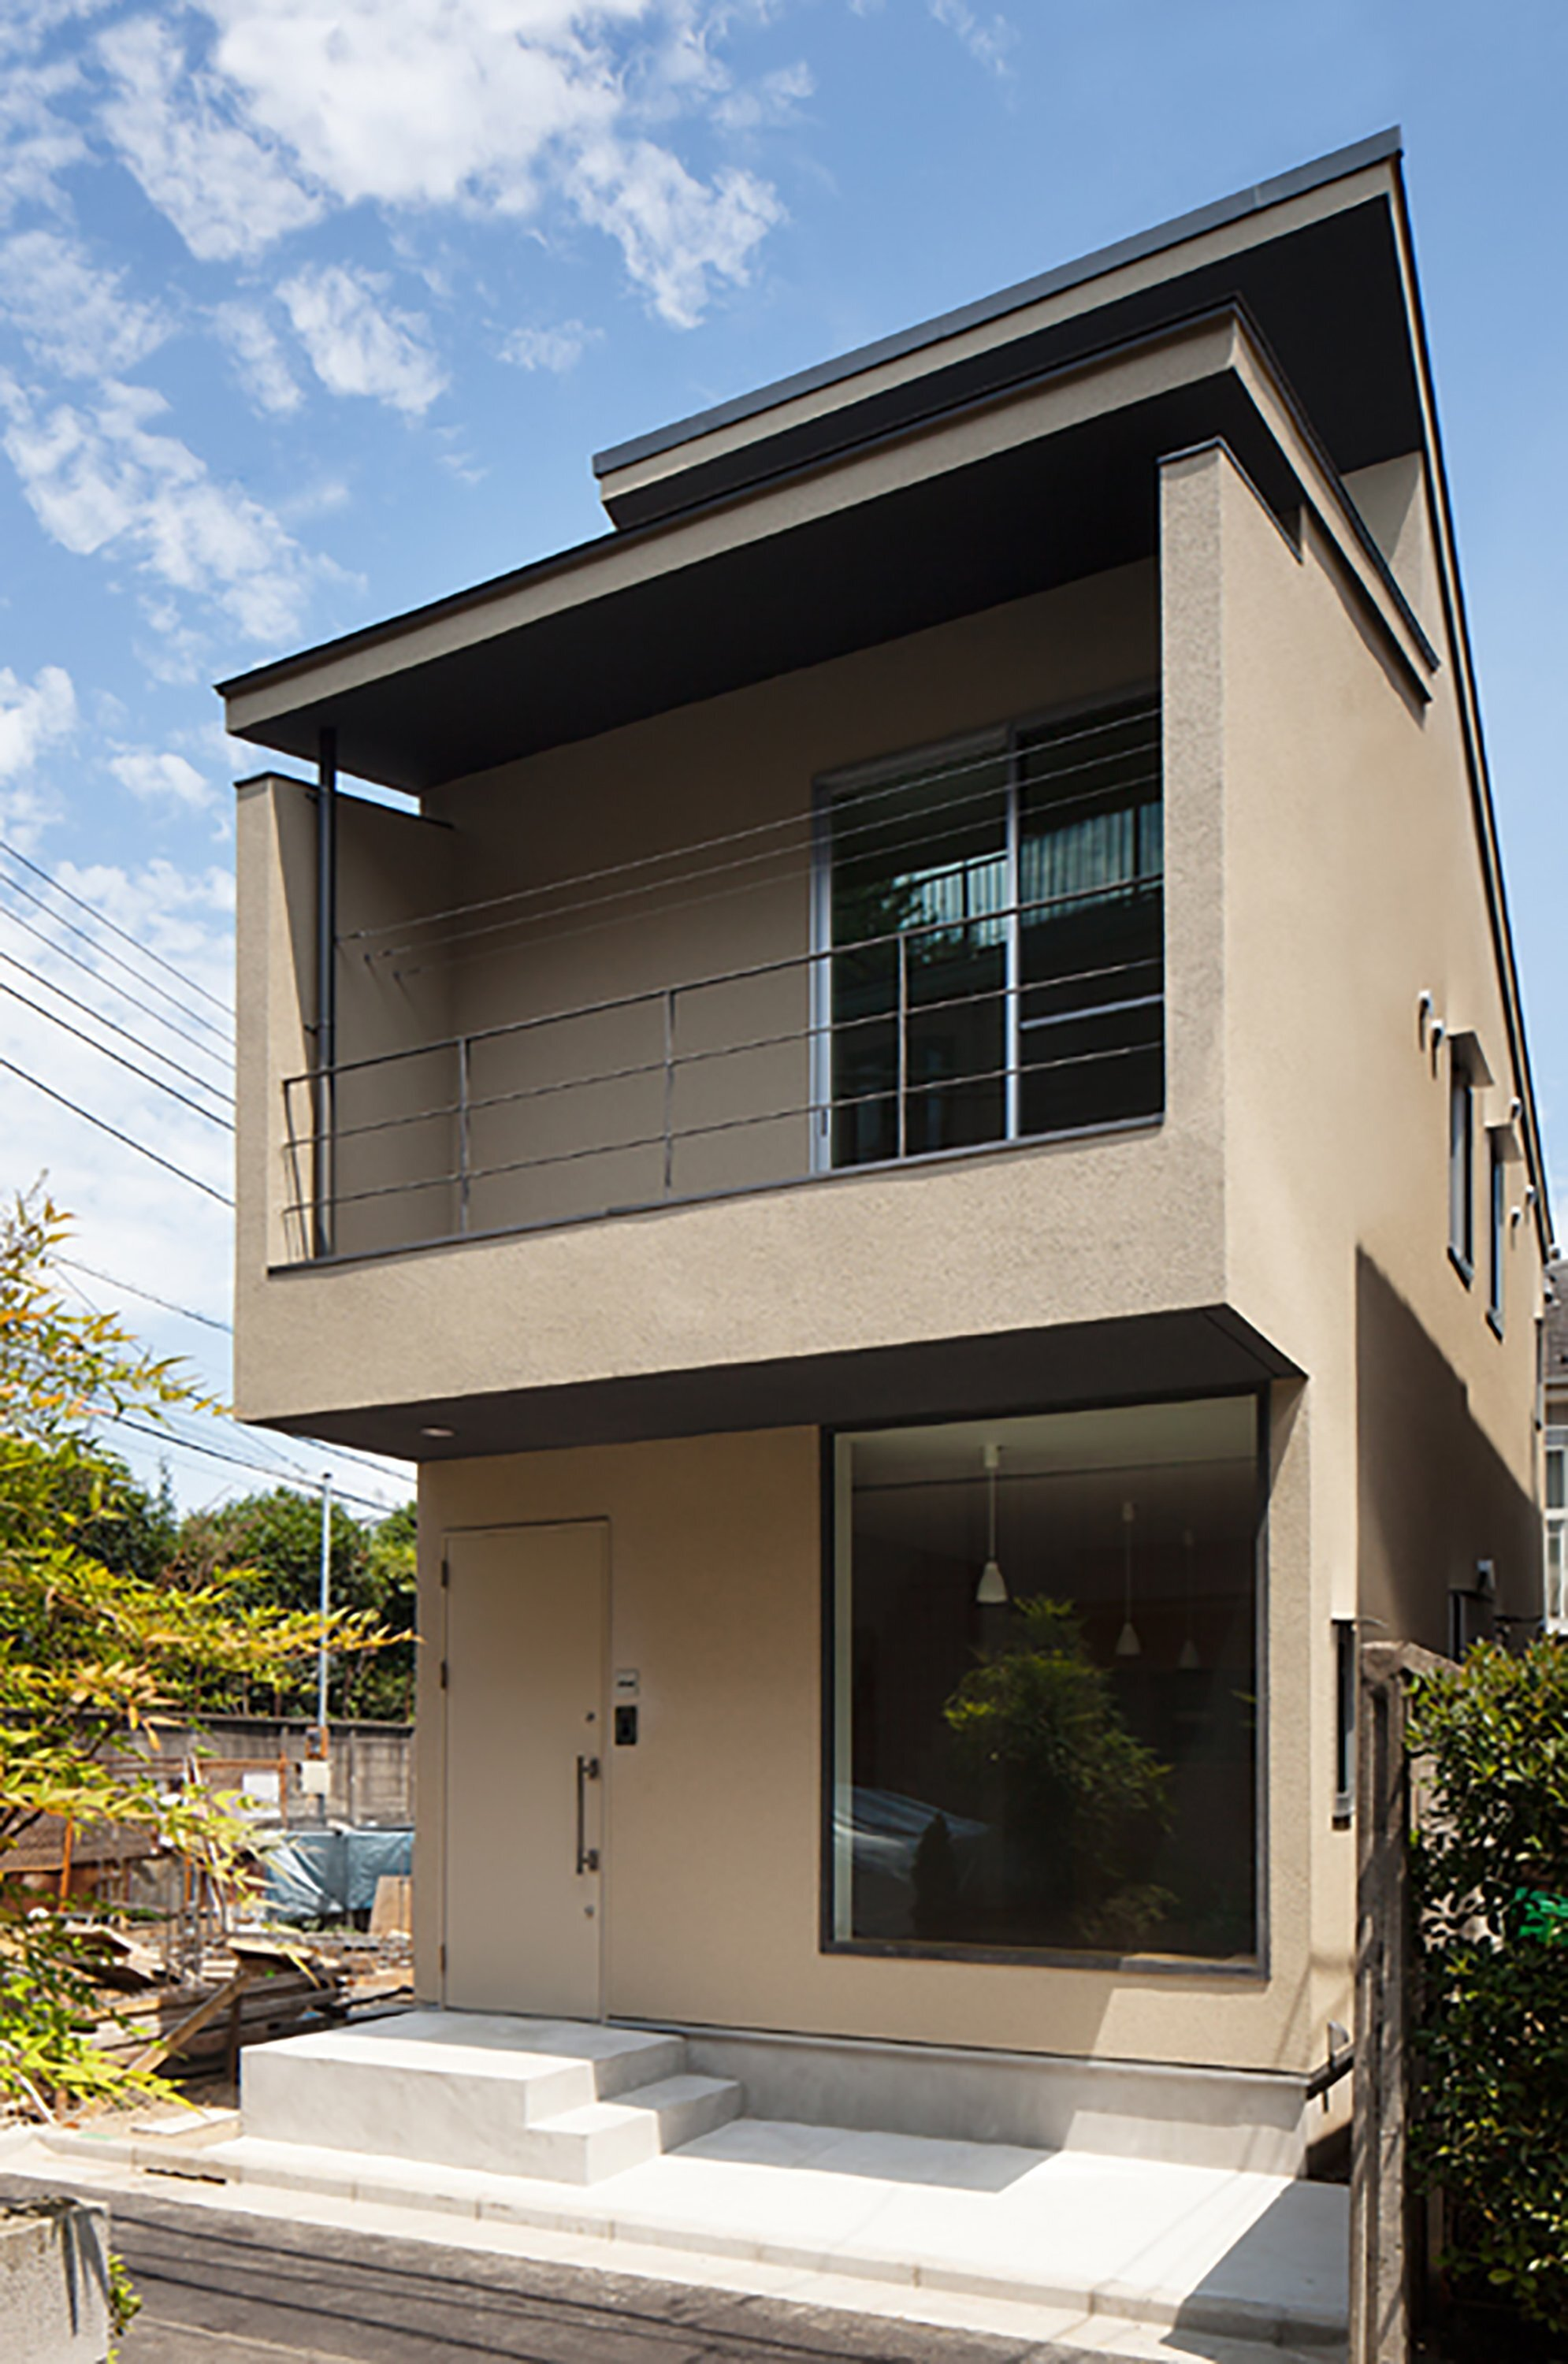 Nakano Fireproof Wooden House Masashi Ogihara Nakano Japan Small Japanese House Exterior Humble Homes - 13+ Modern Front Design Of House In Small Budget Gif